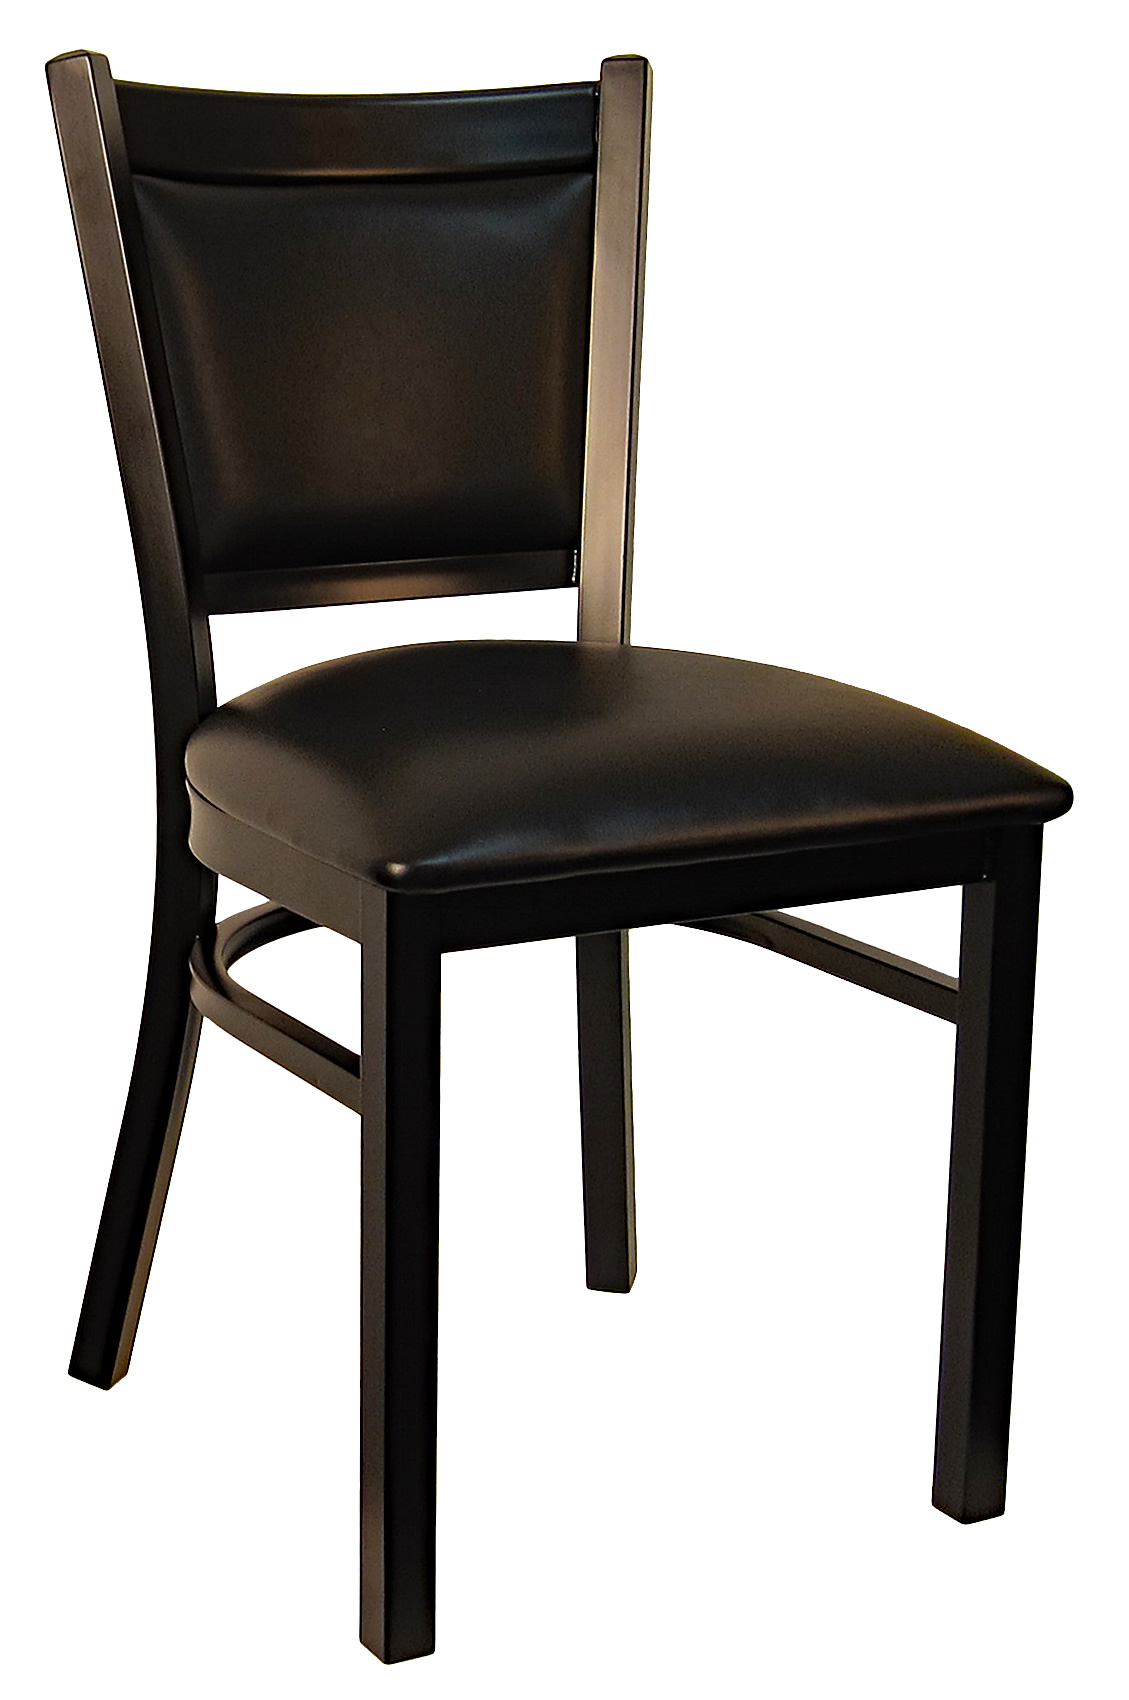 Terrific Padded Back Metal Frame Bar Stool Squirreltailoven Fun Painted Chair Ideas Images Squirreltailovenorg